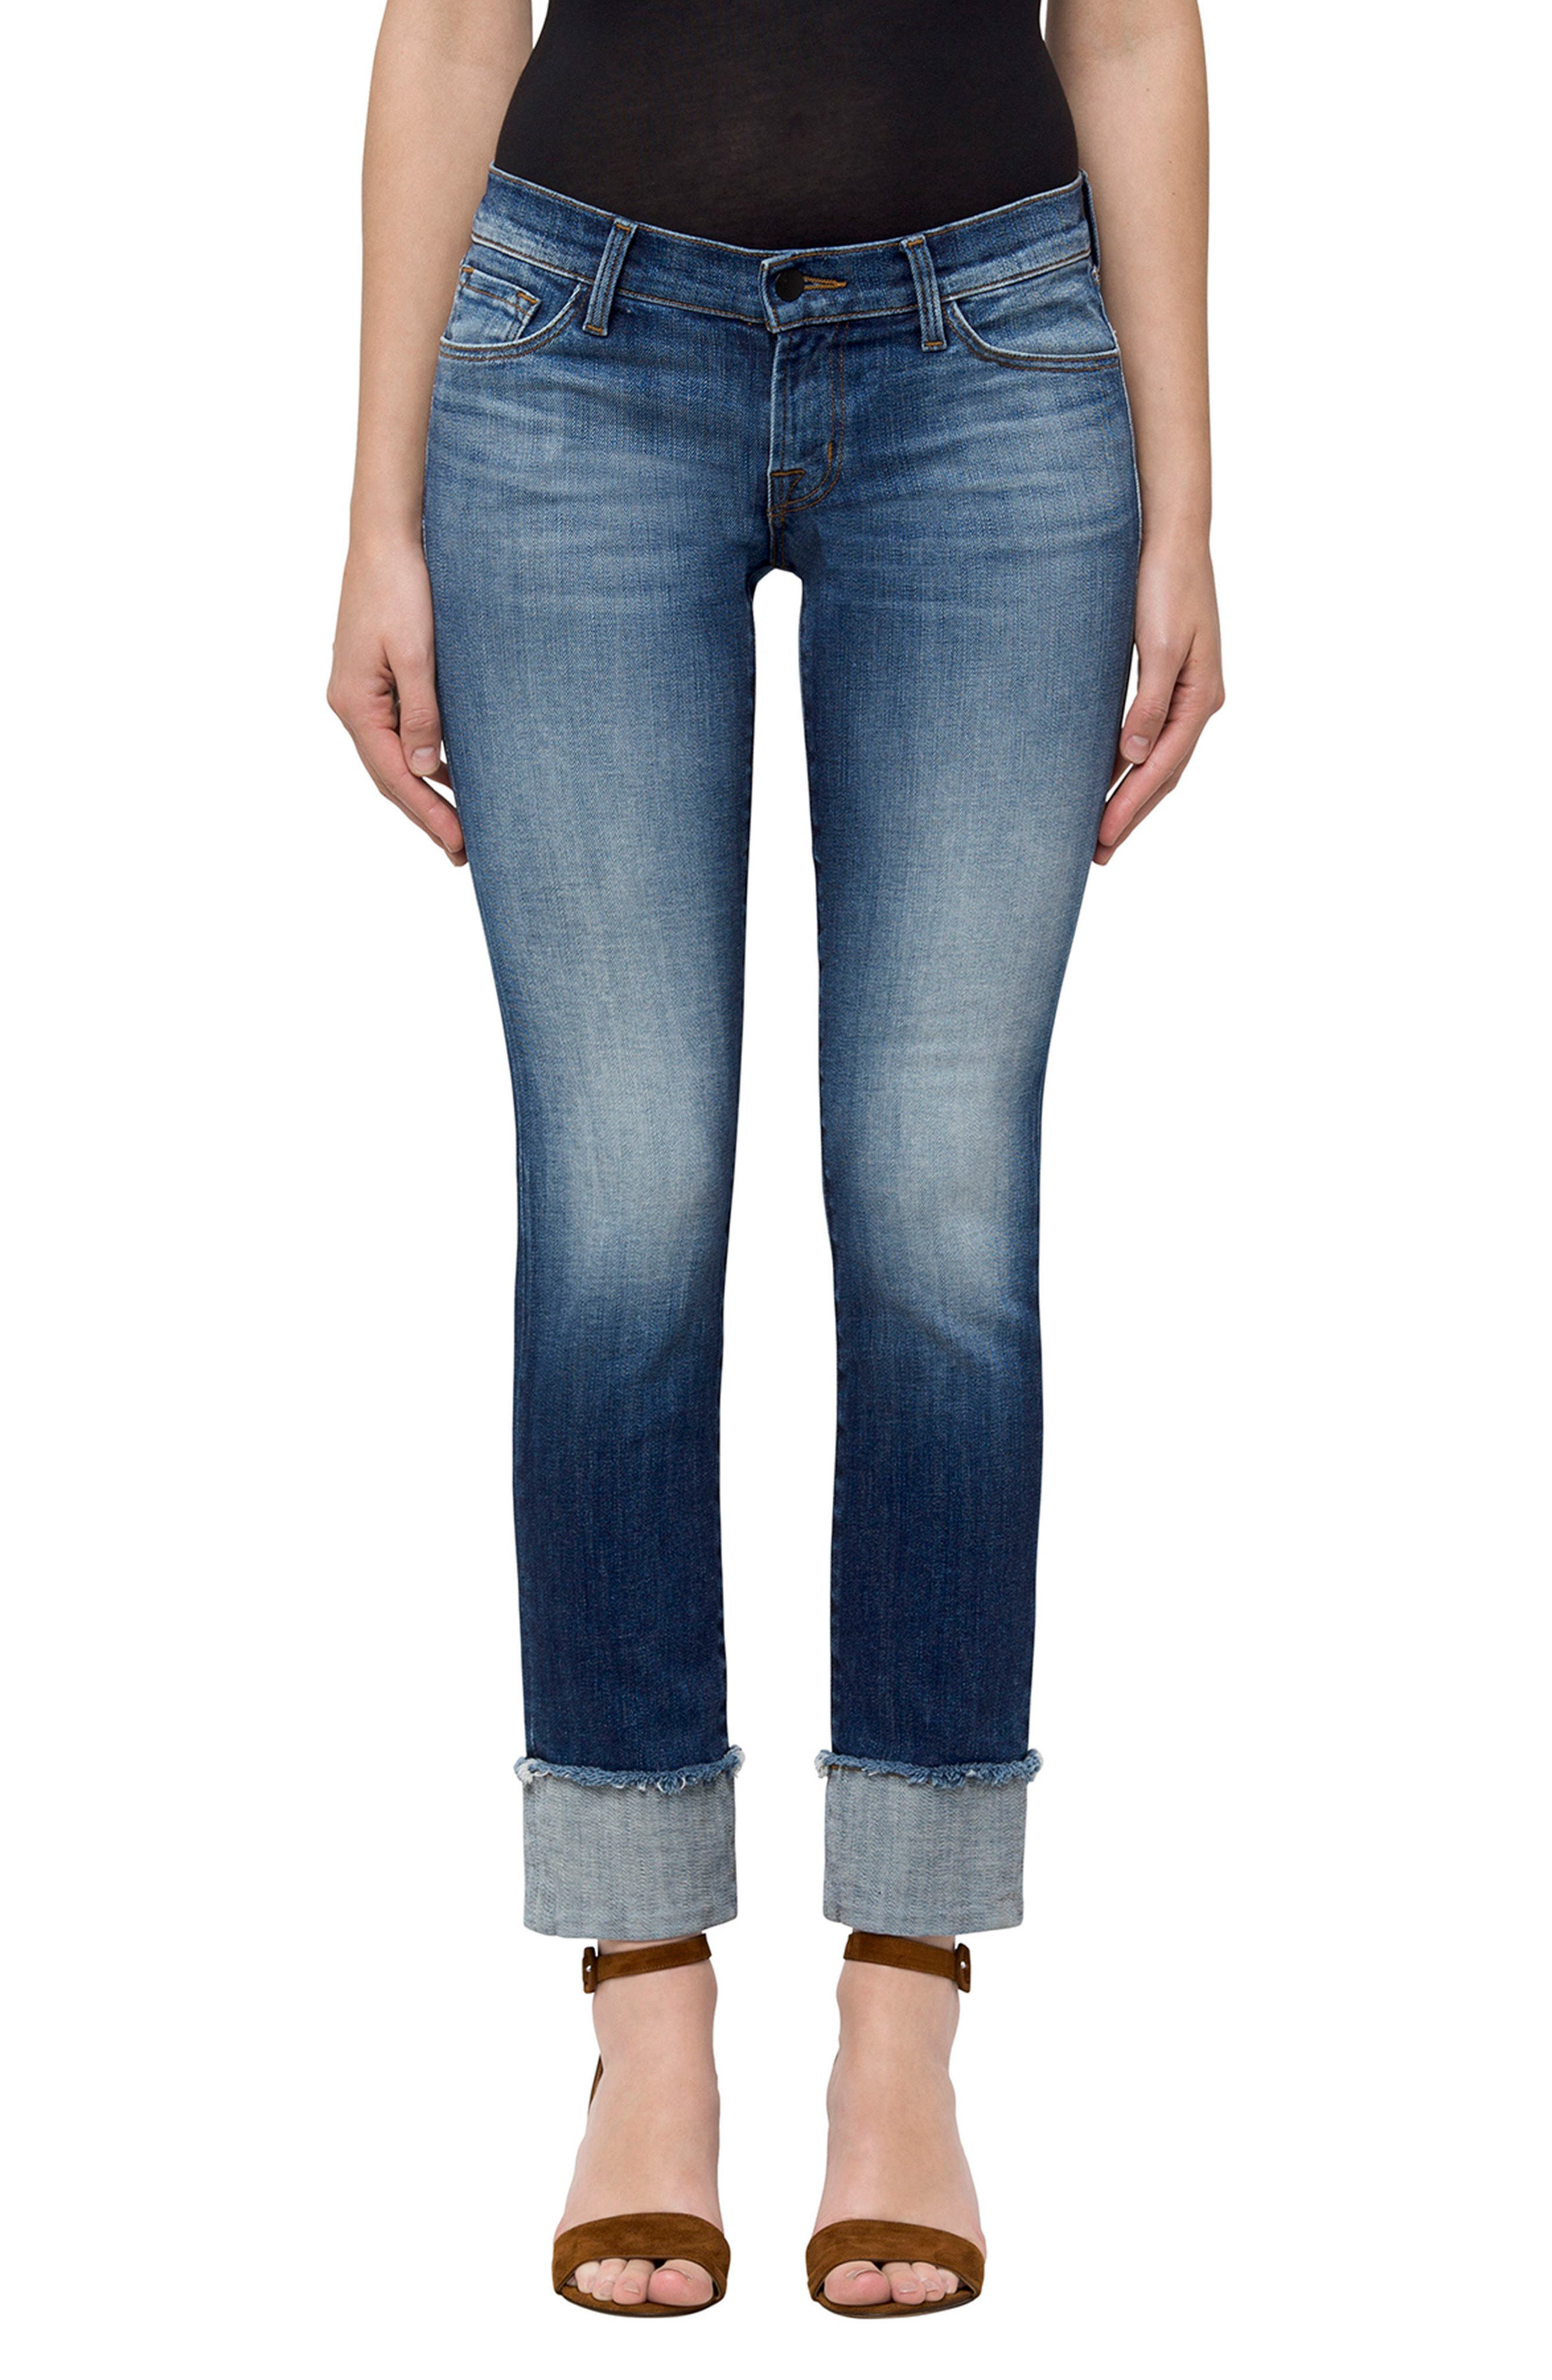 Hipster Low Rise Jeans,                         Main,                         color, Jasper